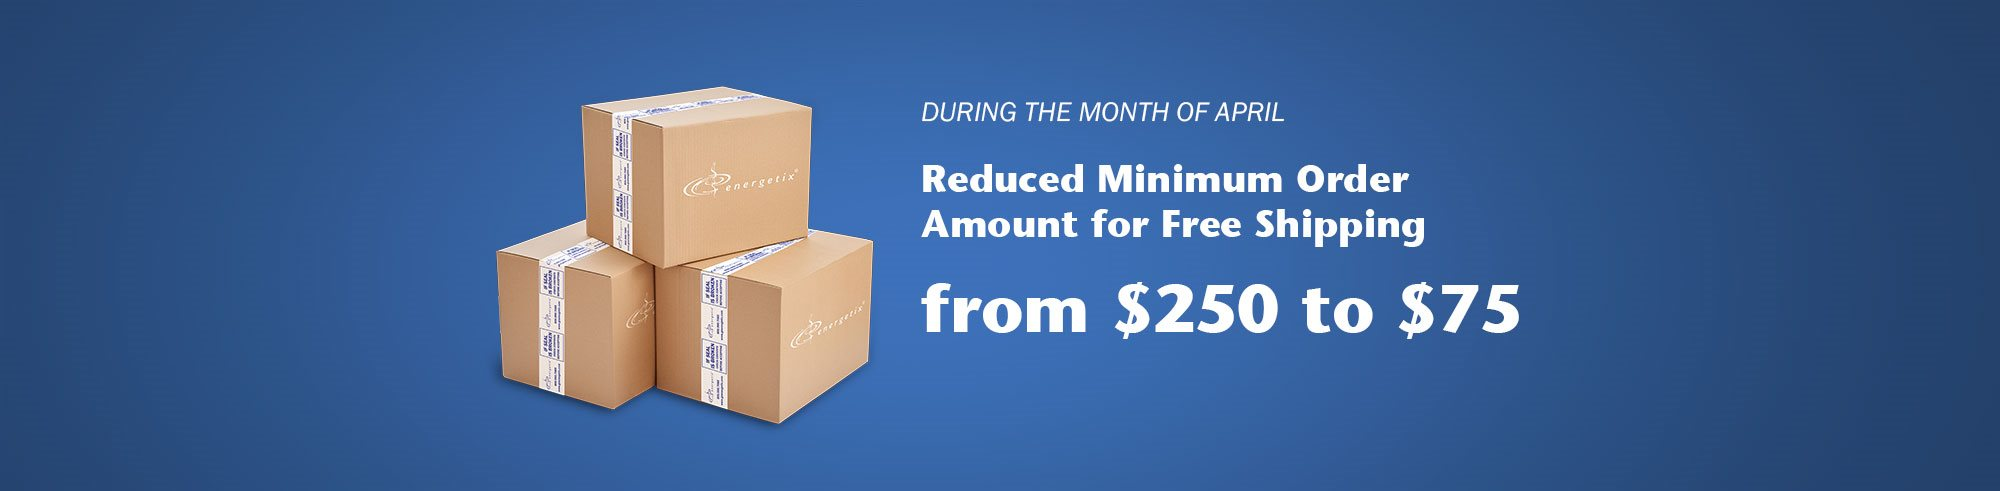 Reduced Minimum Order Requirement for Free Shipping